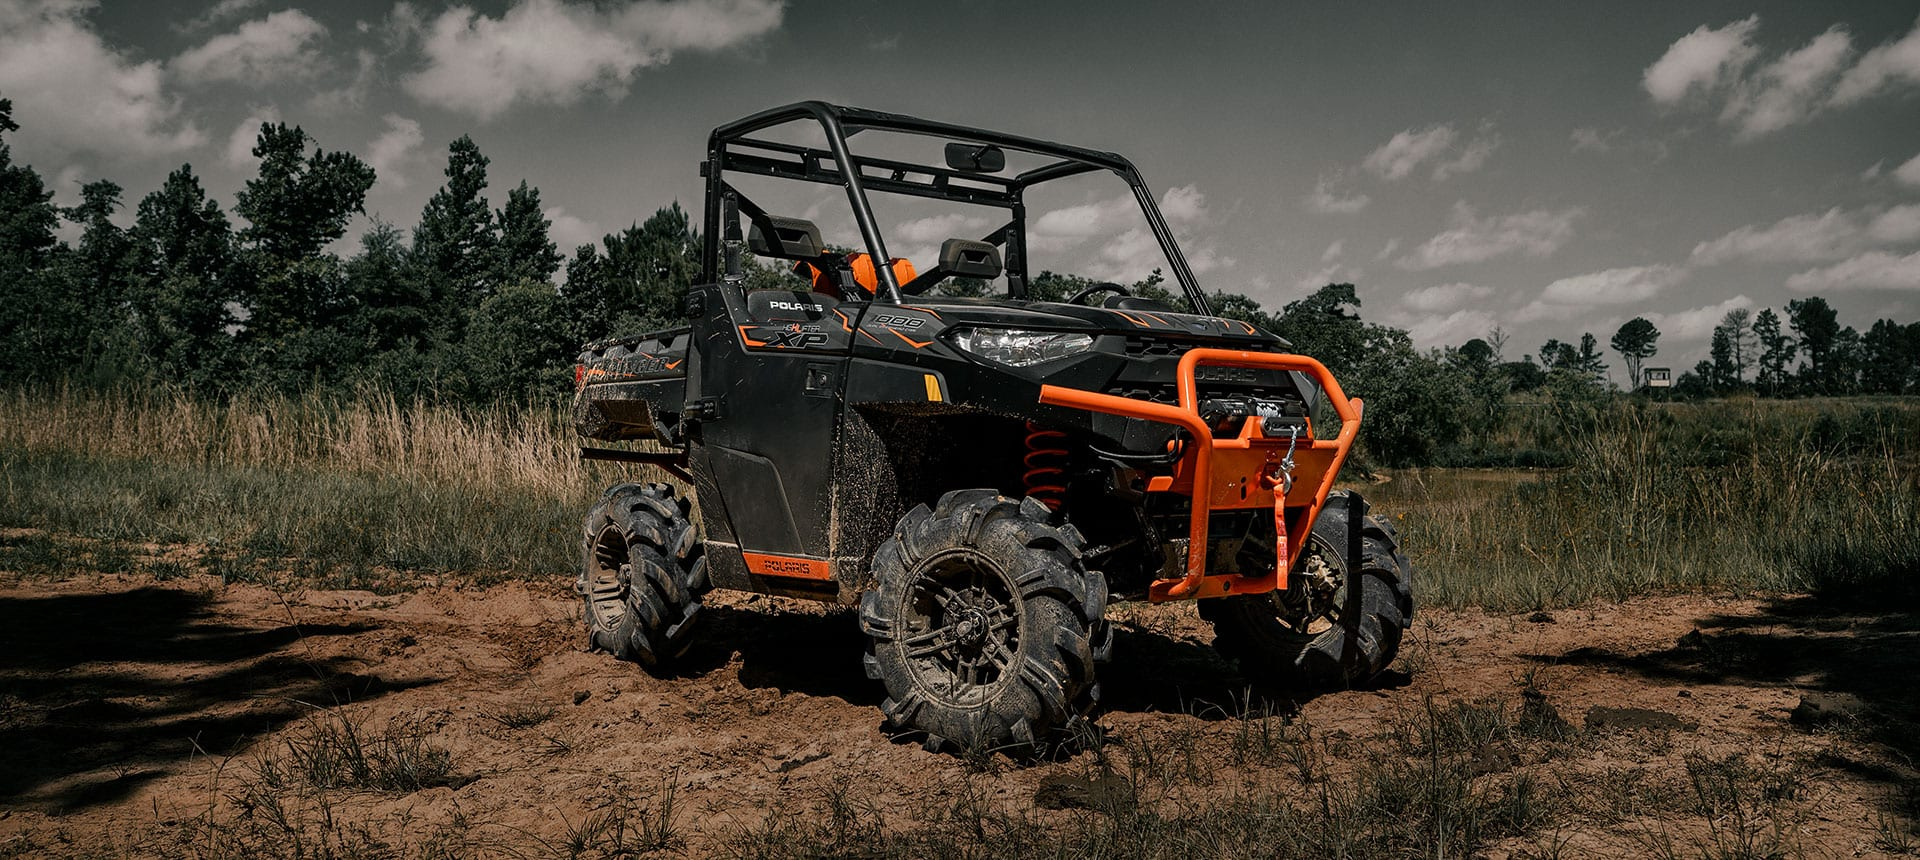 RANGER XP 1000 EPS HIGHLIFTER EDITION